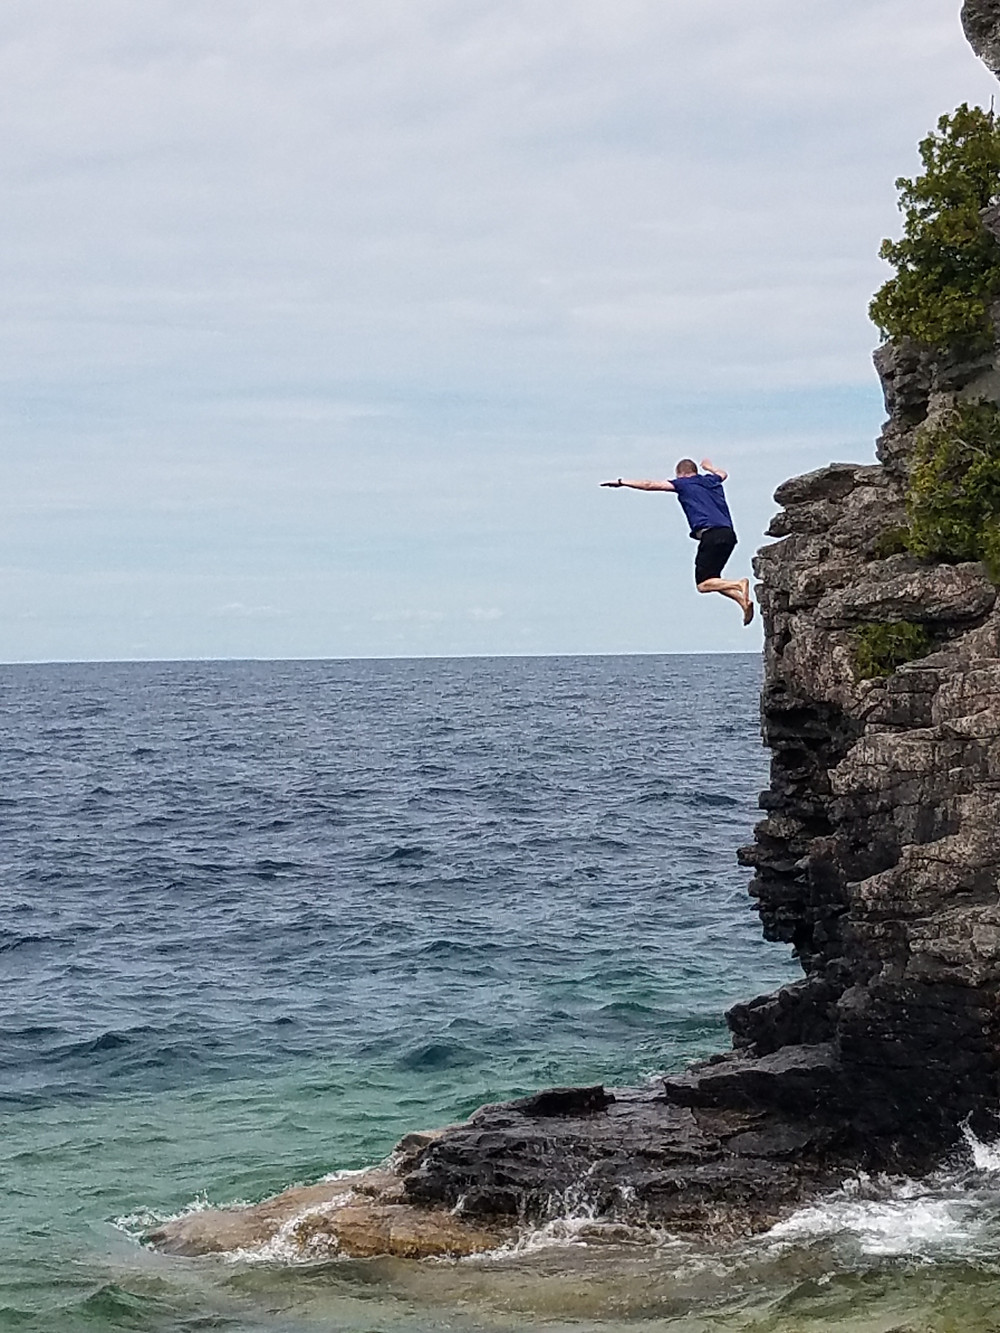 Cliff jumping in the chilly waters of Tobermory, Ontario